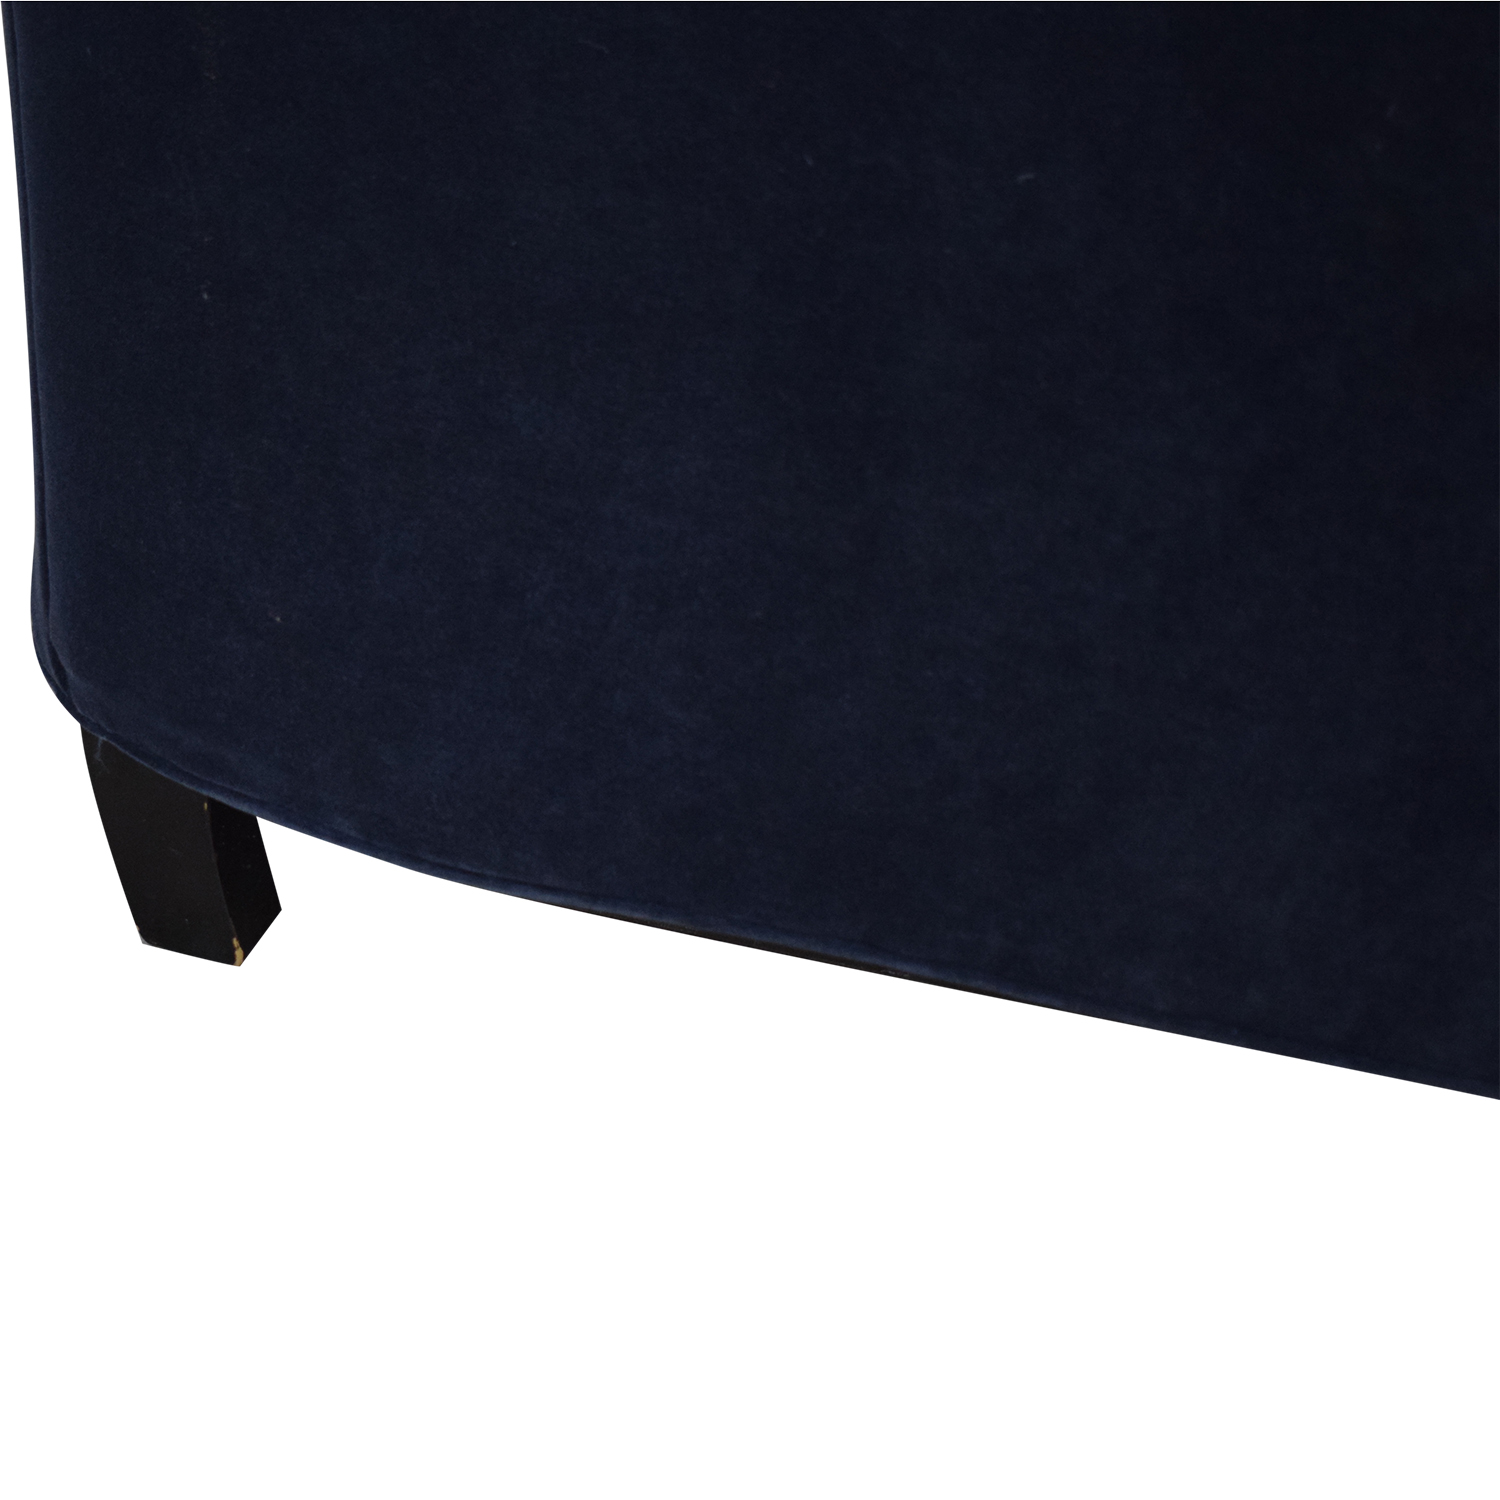 Horchow Horchow Blue Sofa used